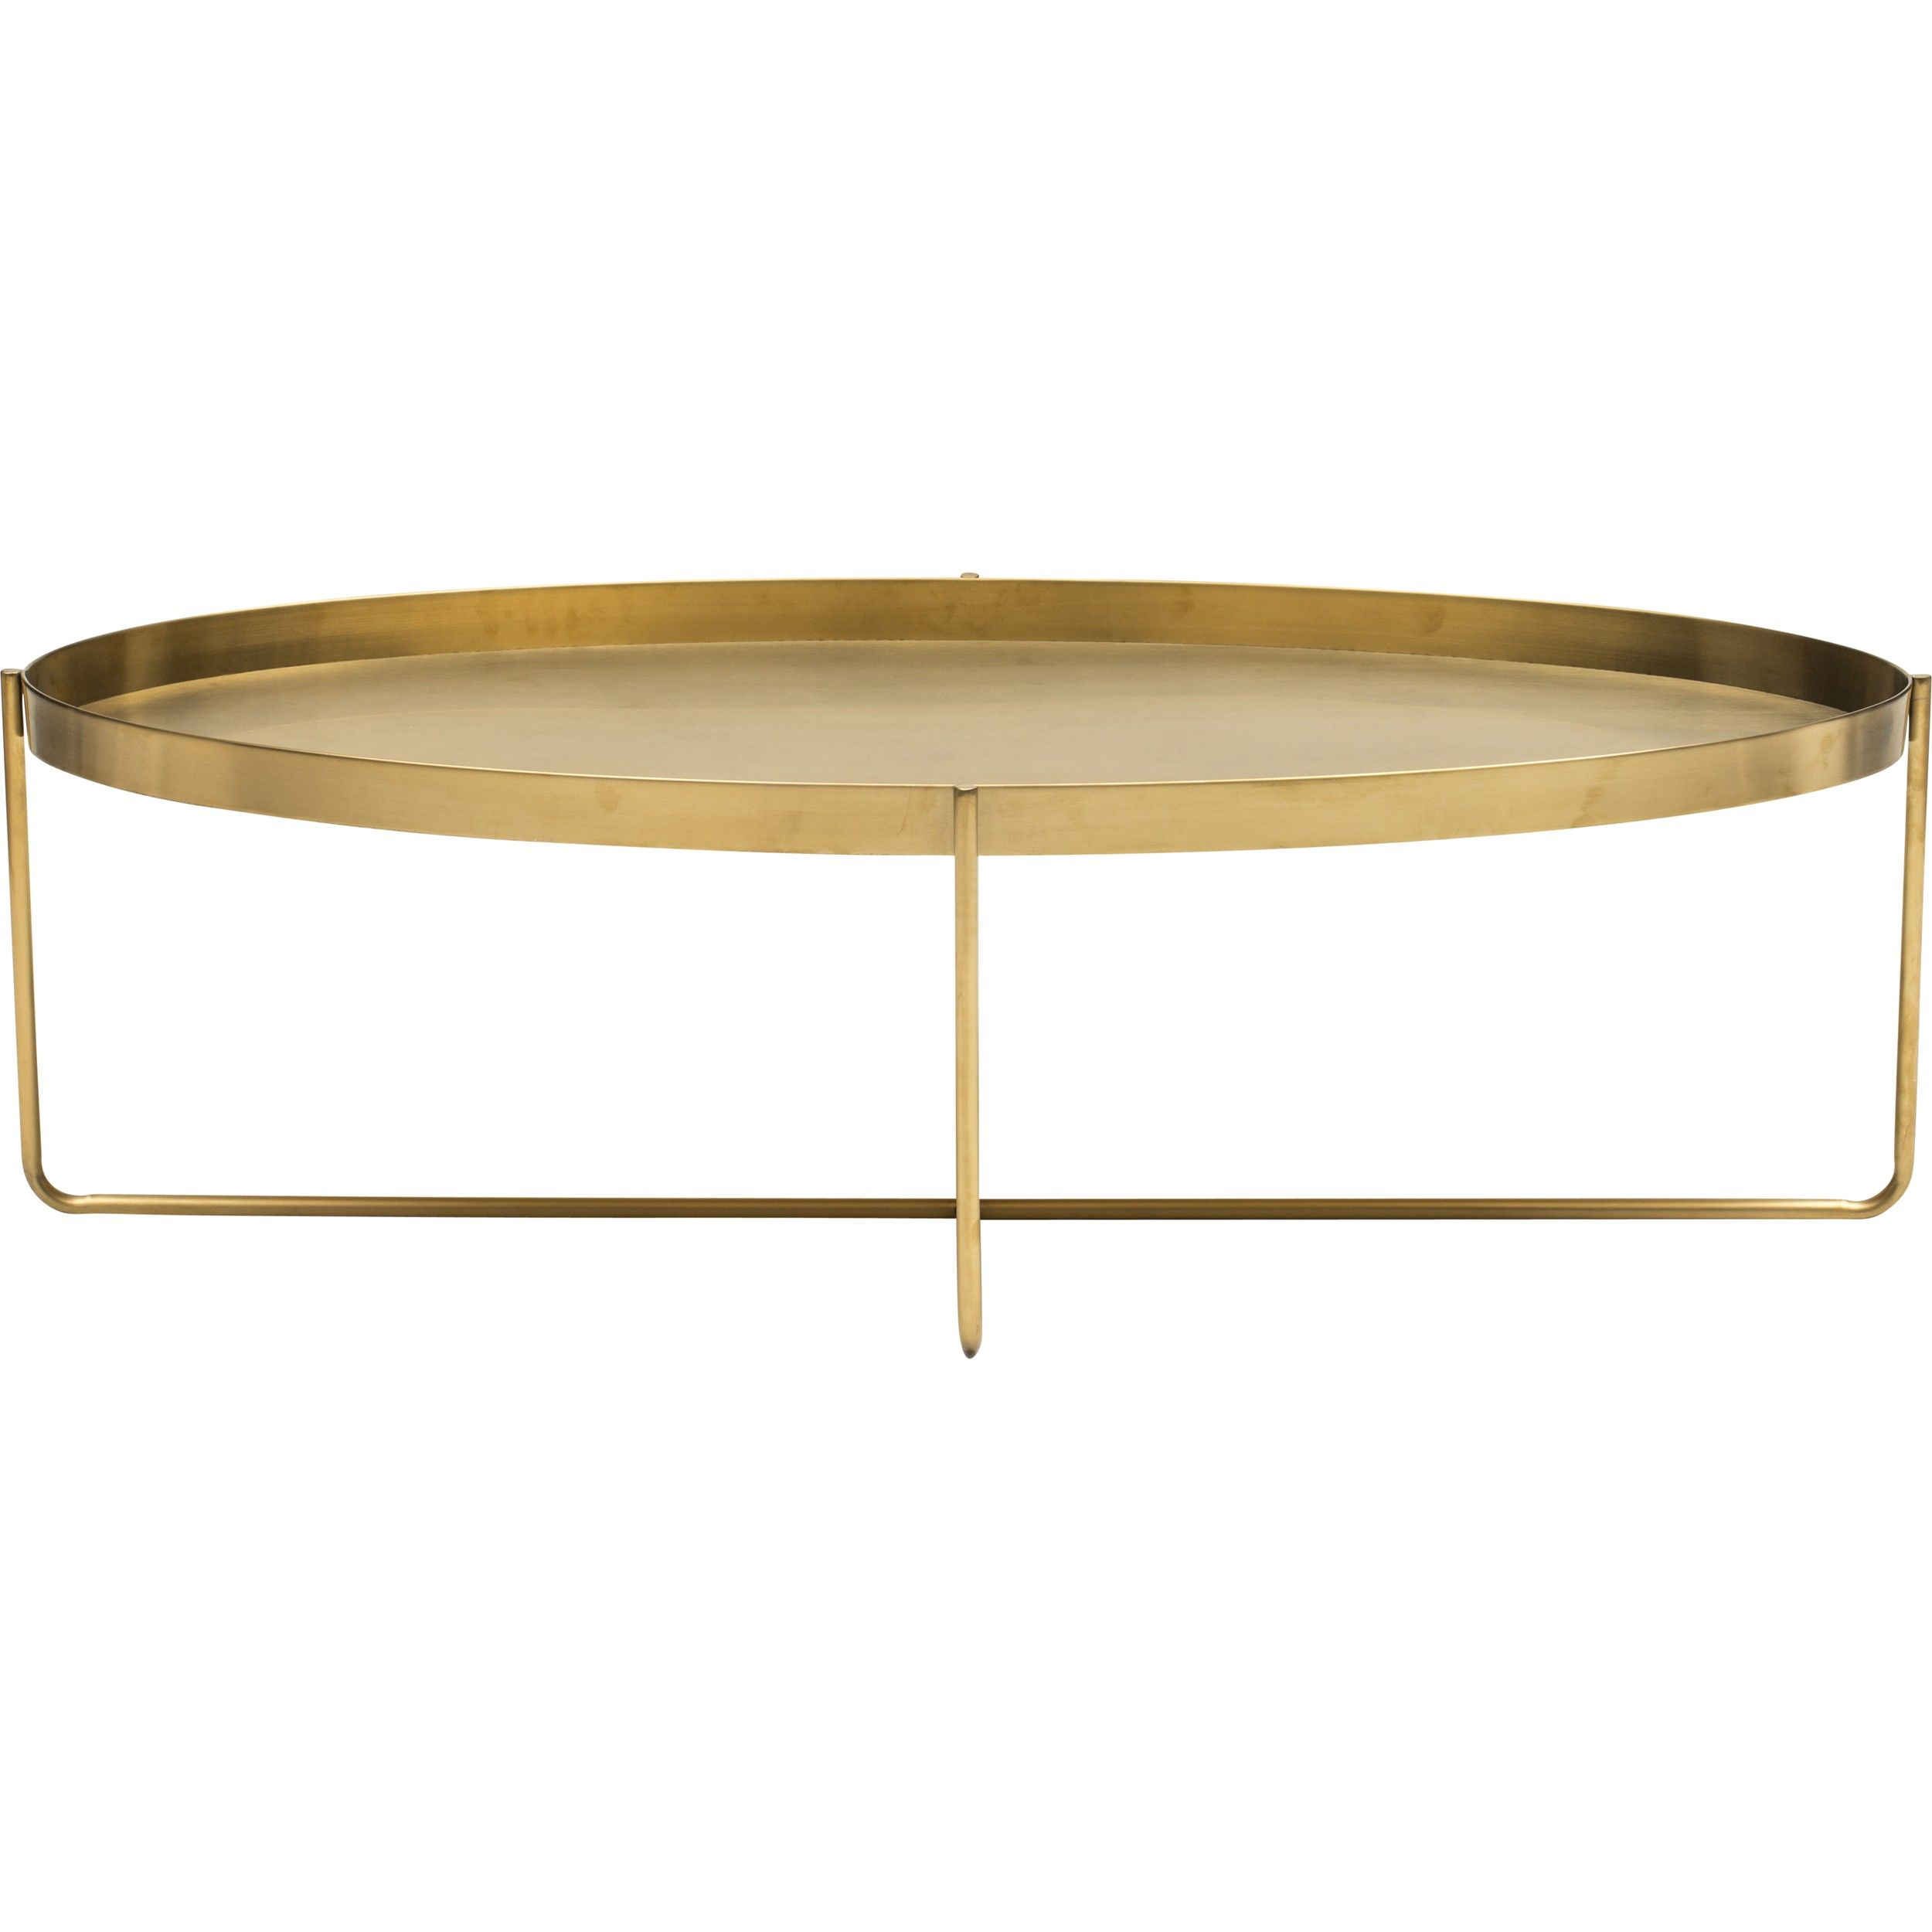 Accent Rex Meubles Gaultier Oval Coffee Table Gold Modern Love Oval Coffee